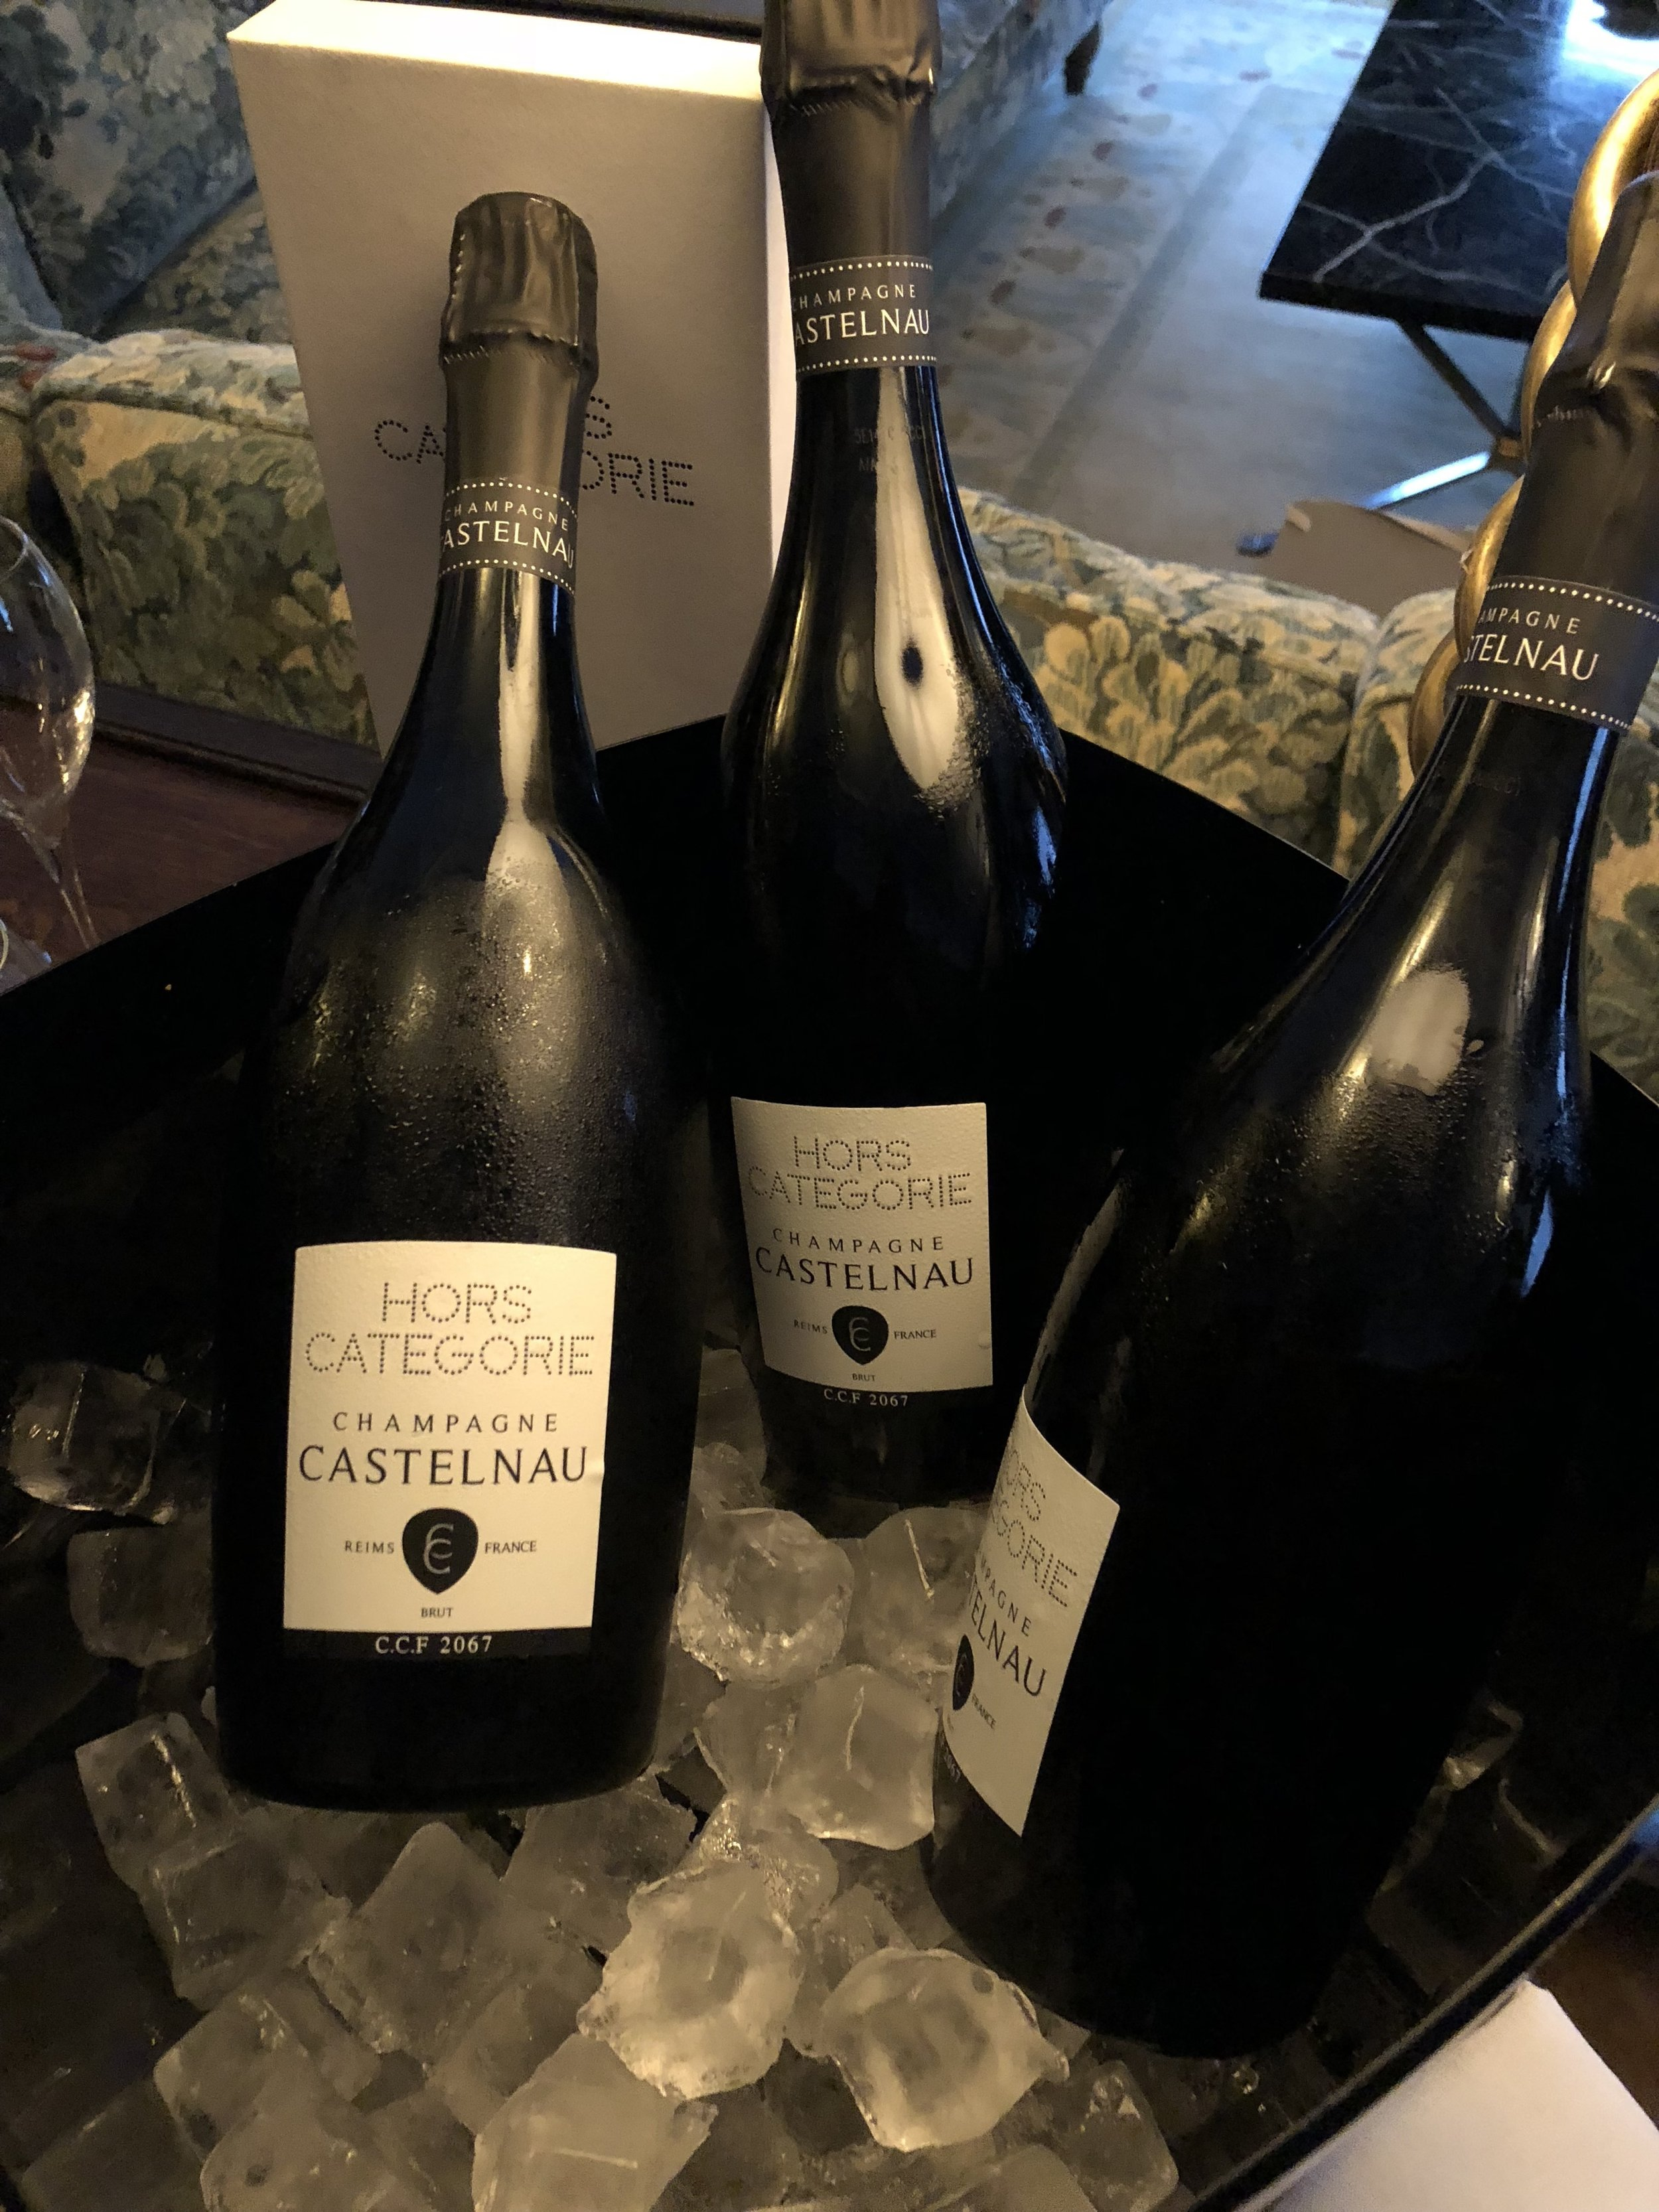 The second year of HORS CATÉGORIE Prestige Cuvée (Credits: Sumi Sarma)